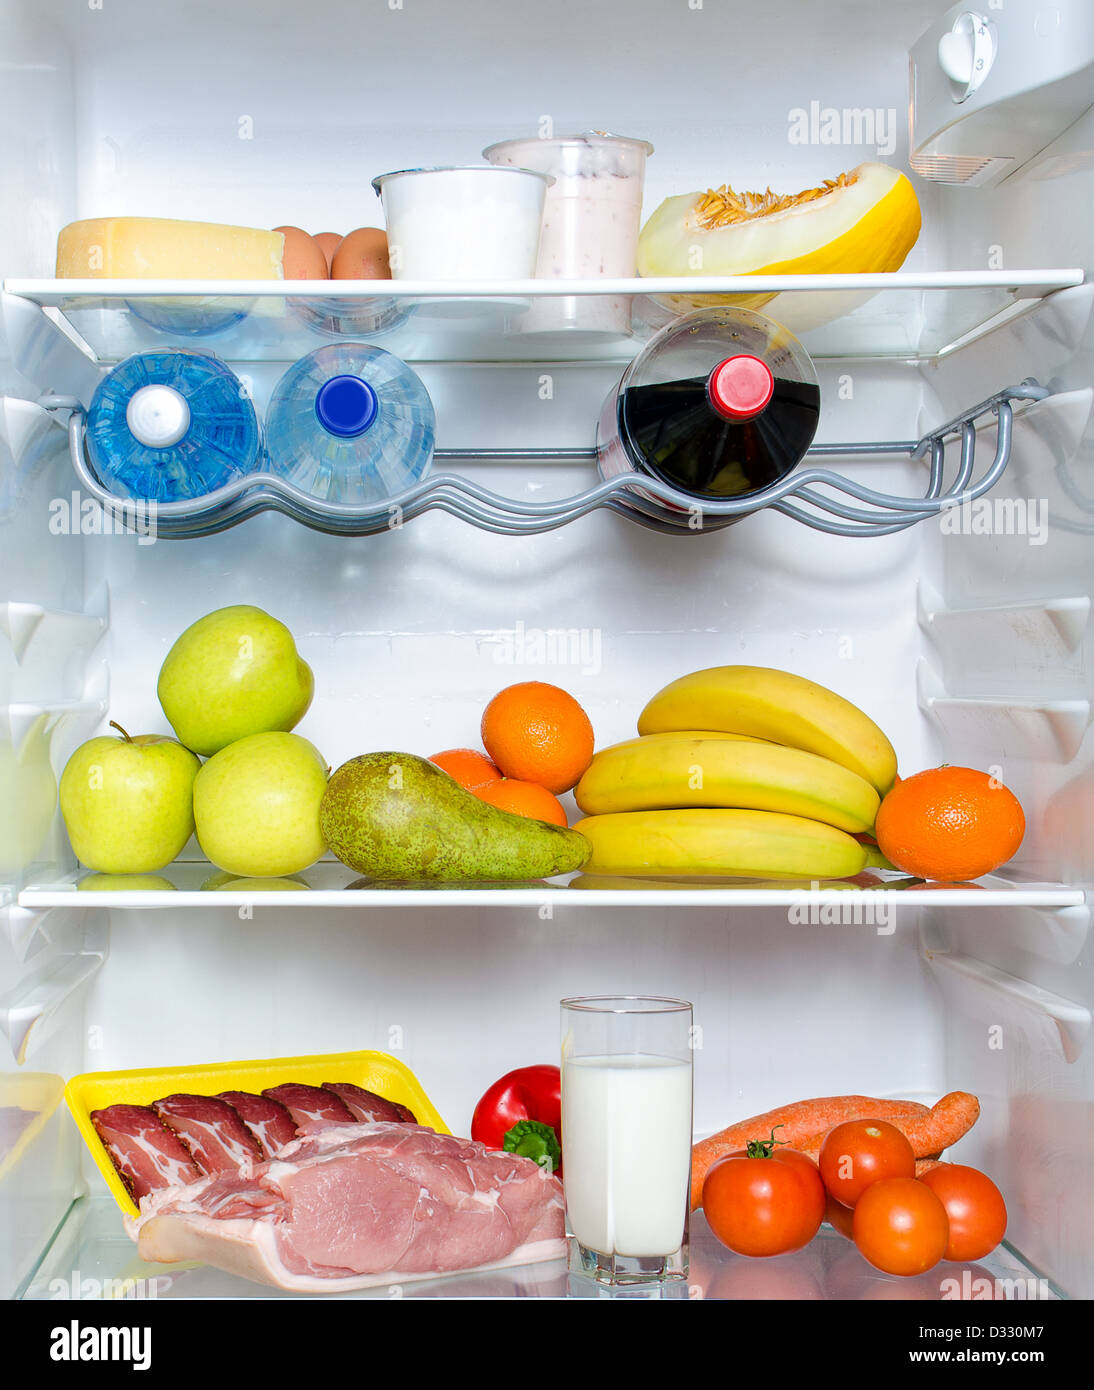 Open fridge full of fruits, vegetables and meat with marked calories - Stock Image